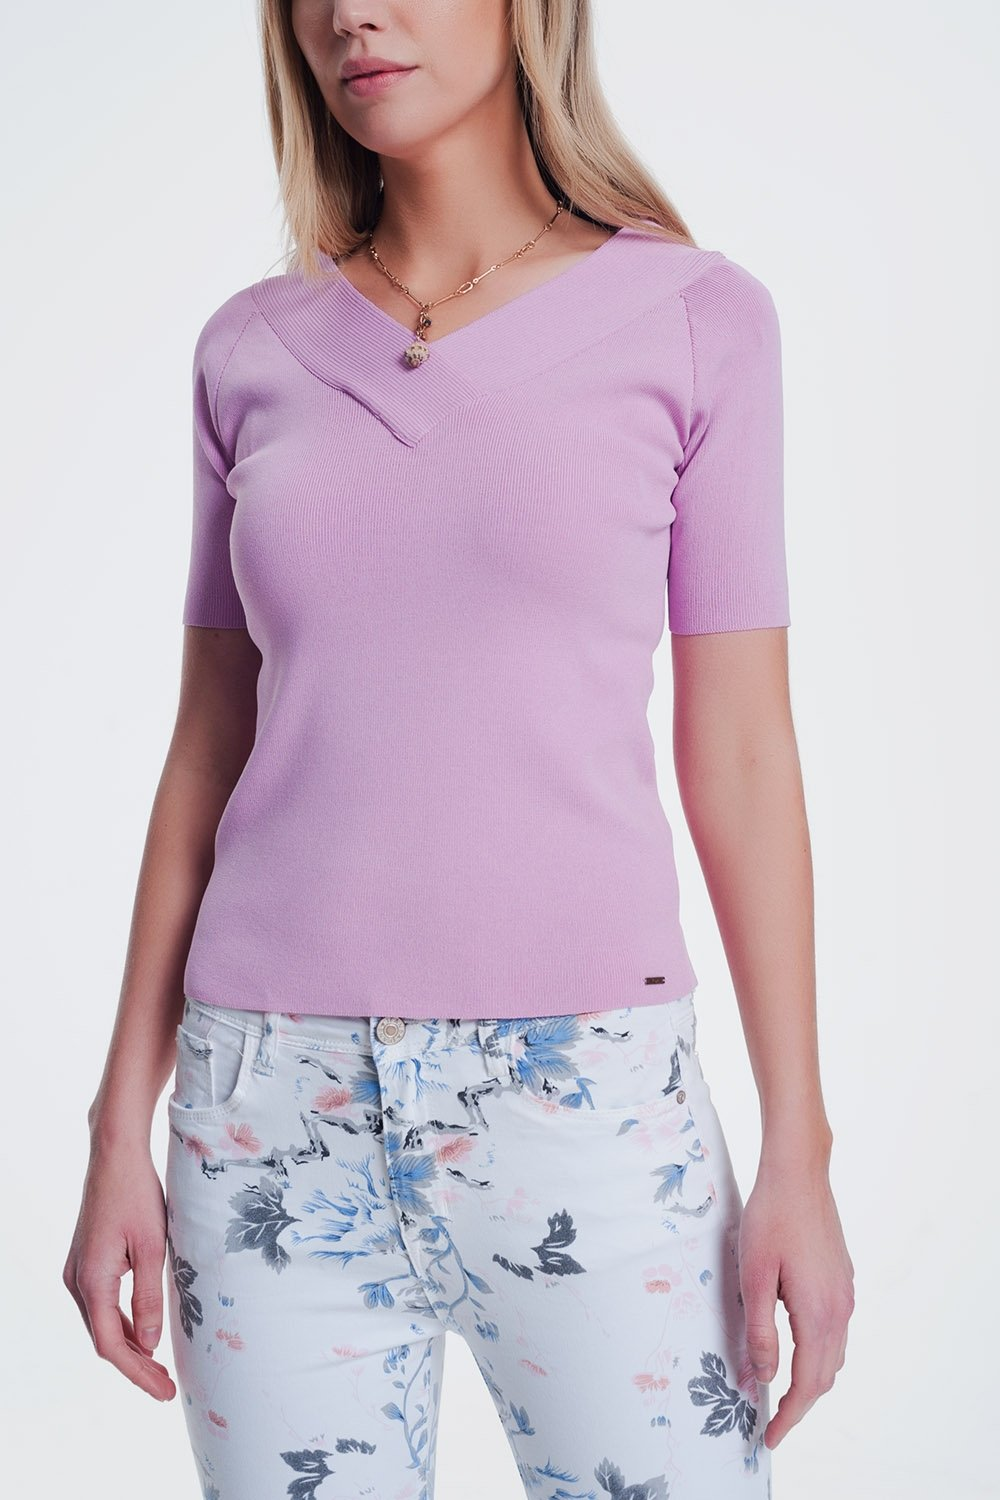 Short Sleeve Pink Sweater With v Neck